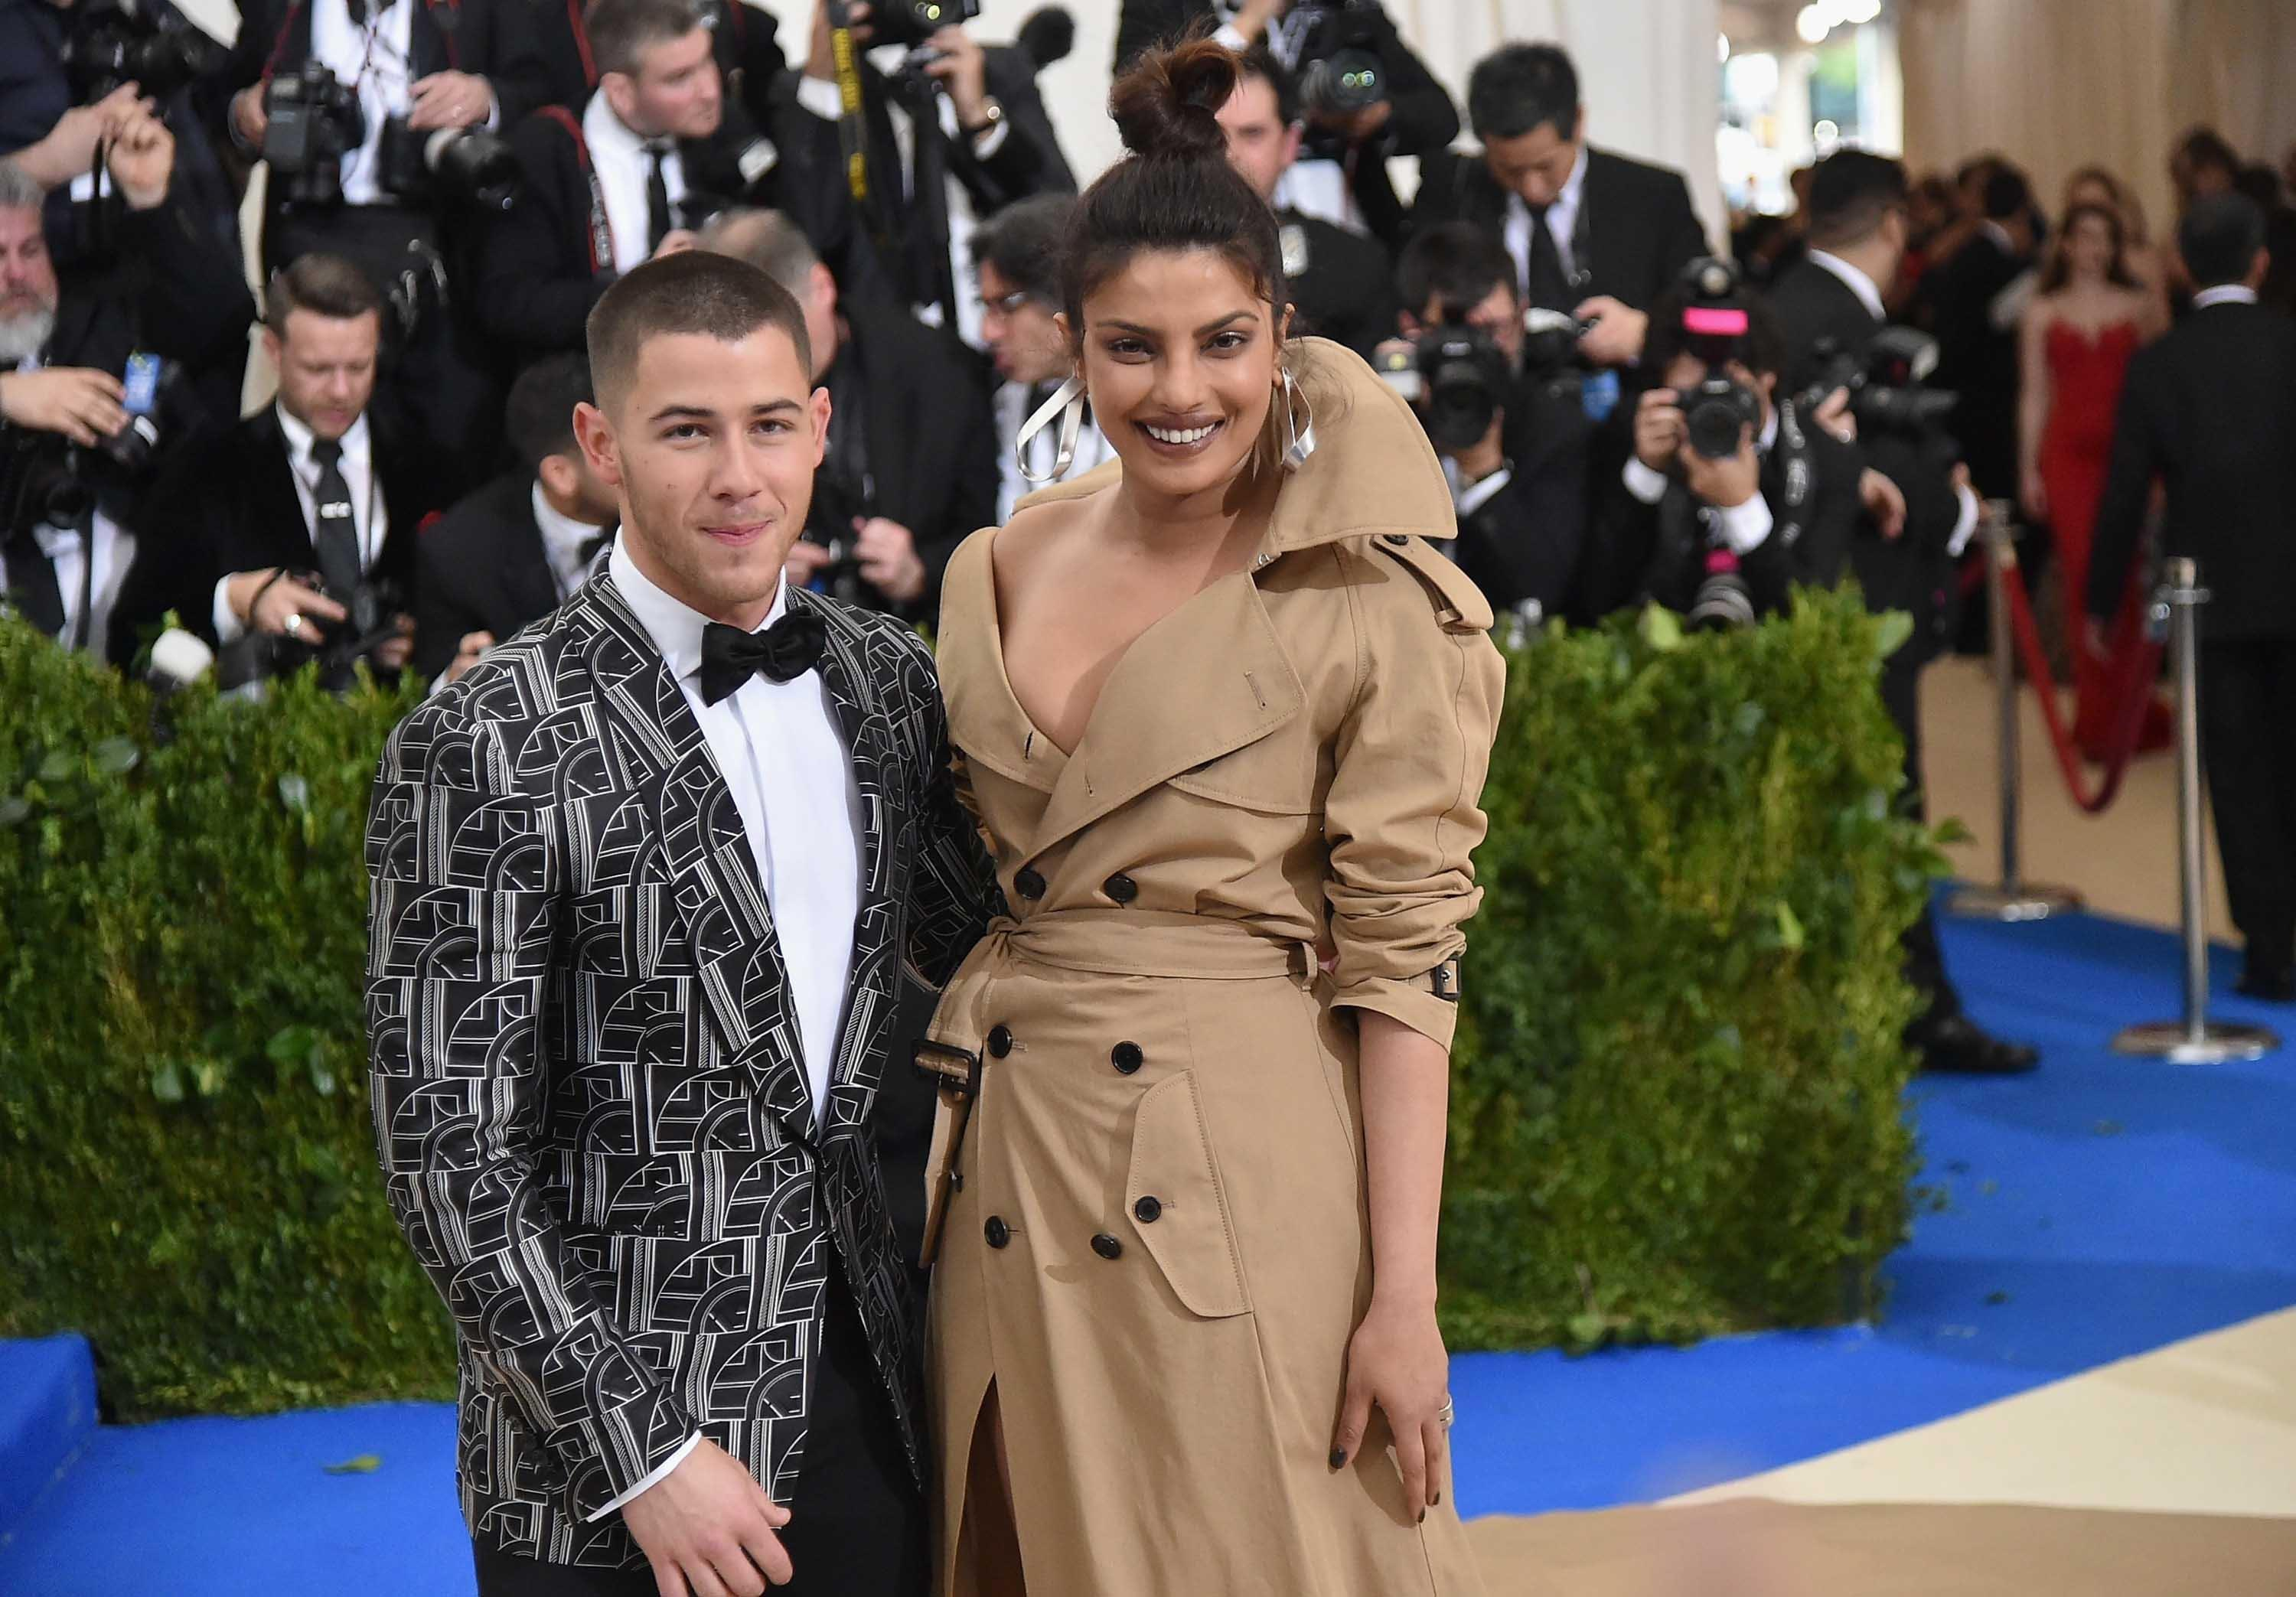 Nick Jonas & Priyanka Chopra Confirm Their Engagement On Instagram